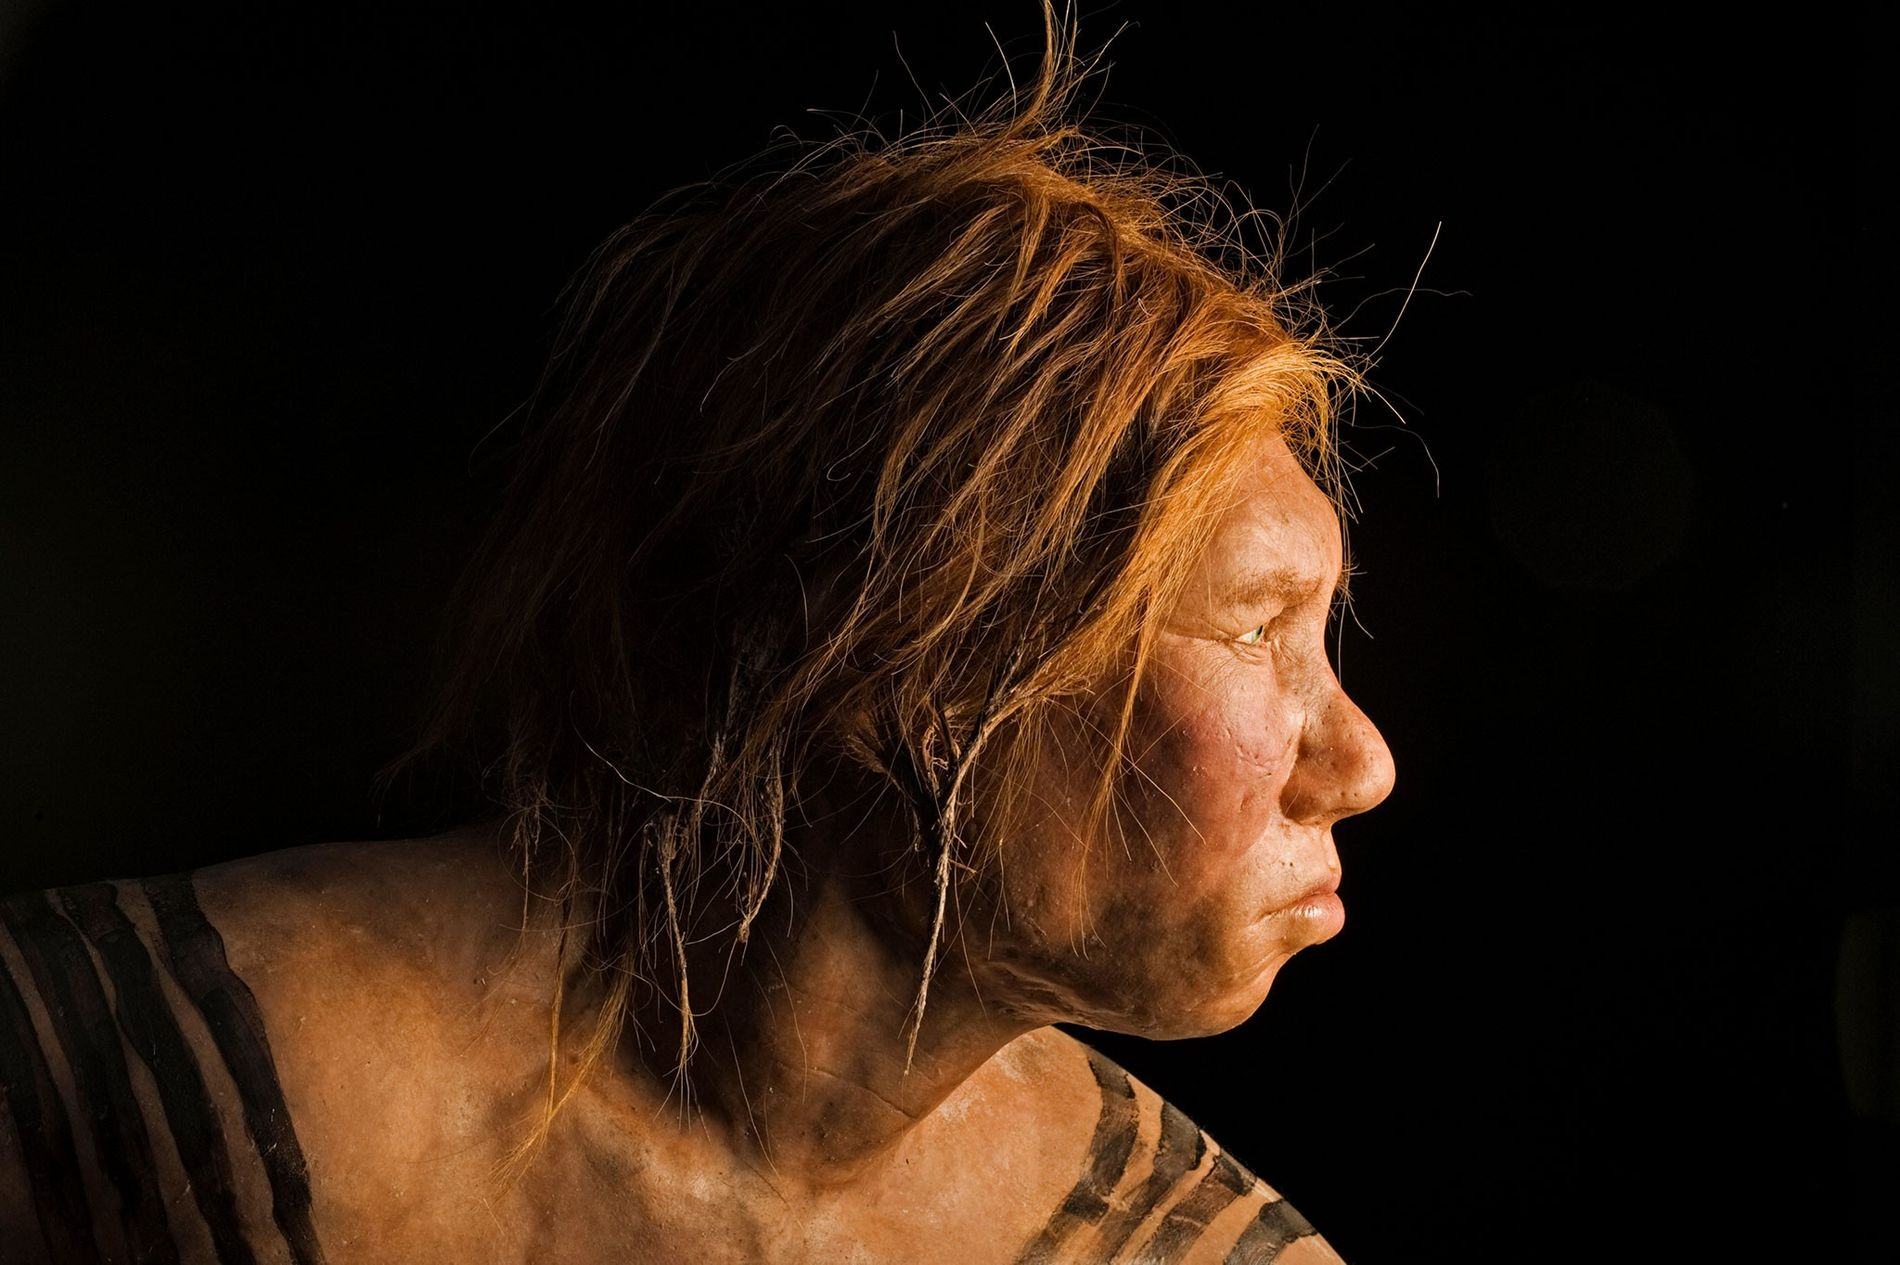 Unveiled in 2008, this reconstruction of a Neanderthal female was the first made using ancient DNA evidence.